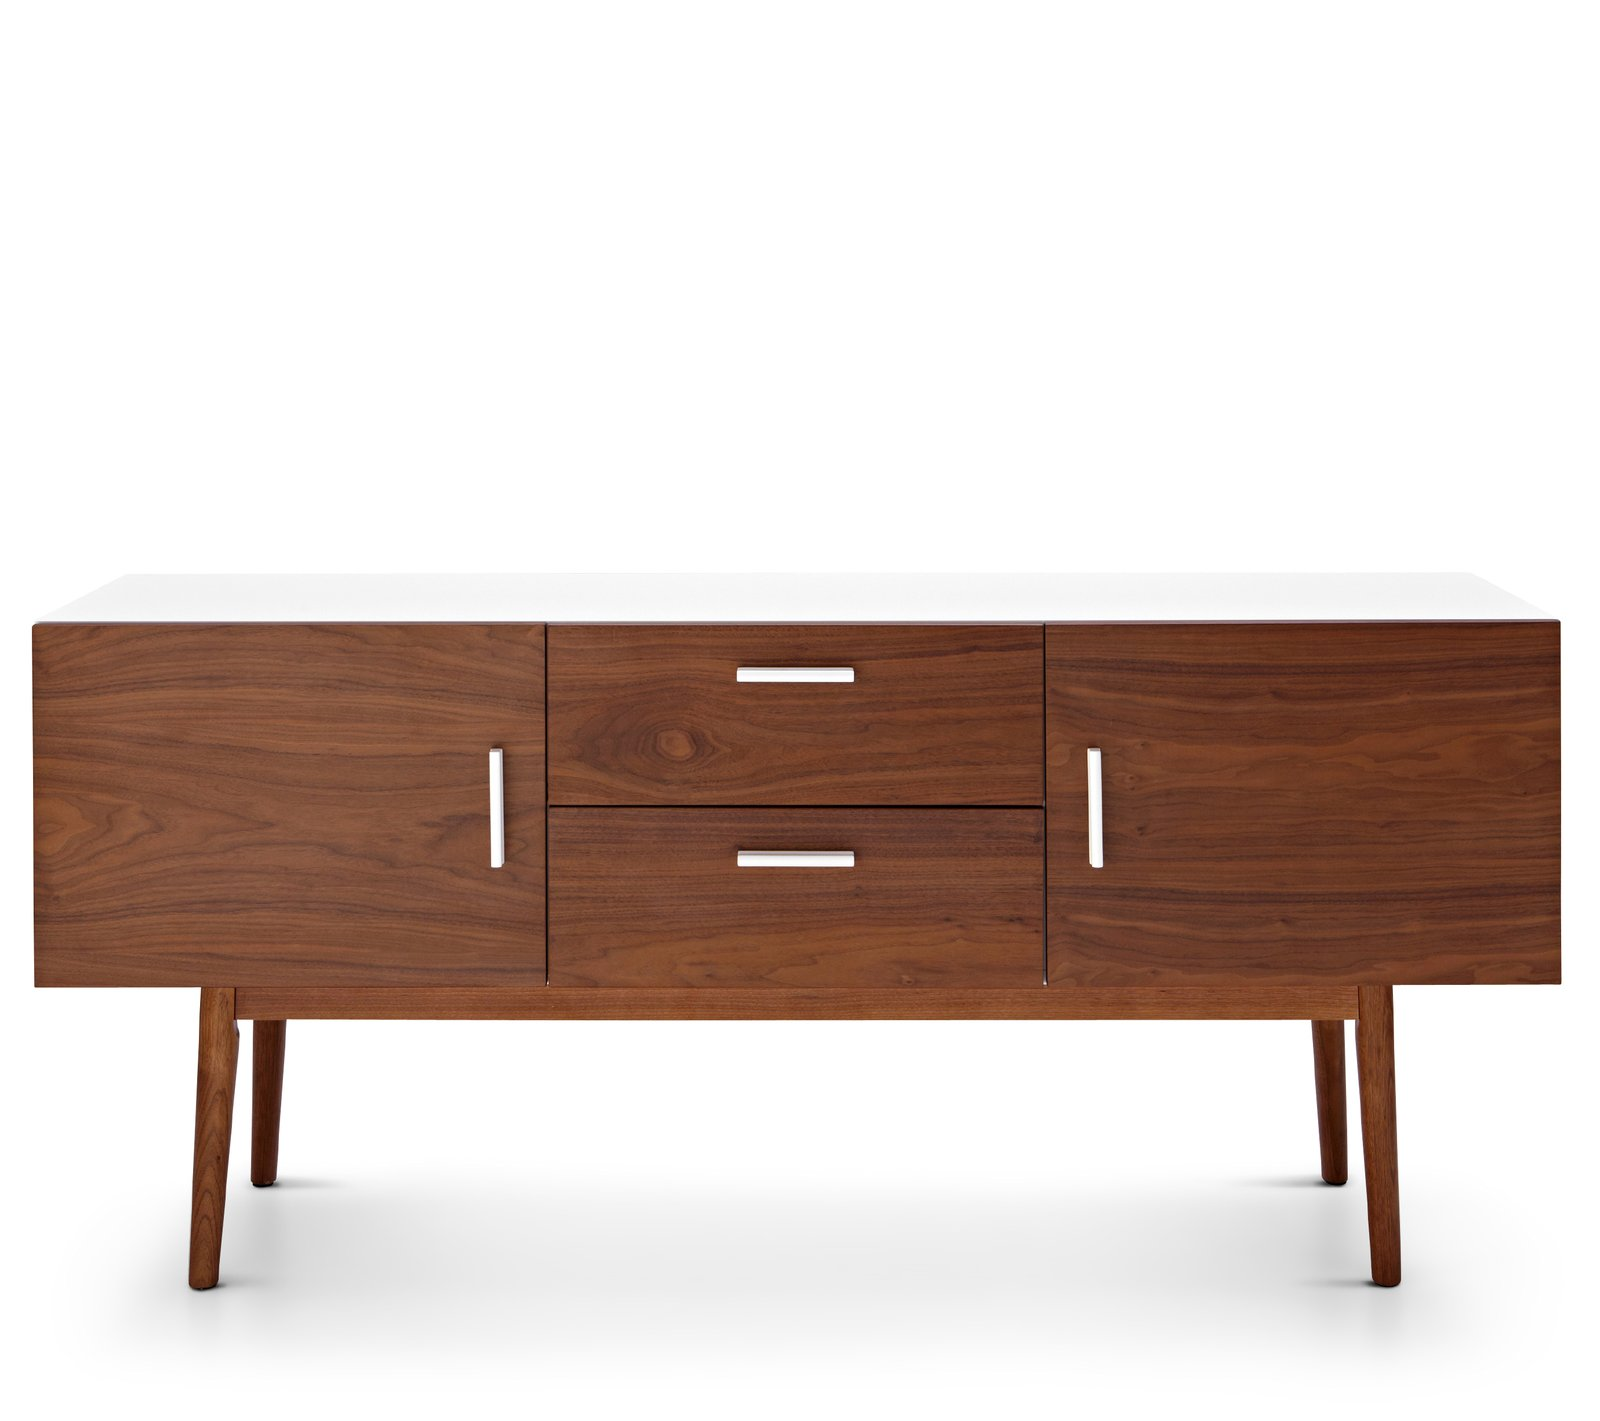 """Happy Chic by Jonathan Adler Bleecker 63"""" TV Cabinet  With cutouts for cable management, the Bleeker media cabinet features tapered legs, shaped pulls, and a solid ash and pine frame.  New Home Collection at JcPenney by Kristen W. Terry"""